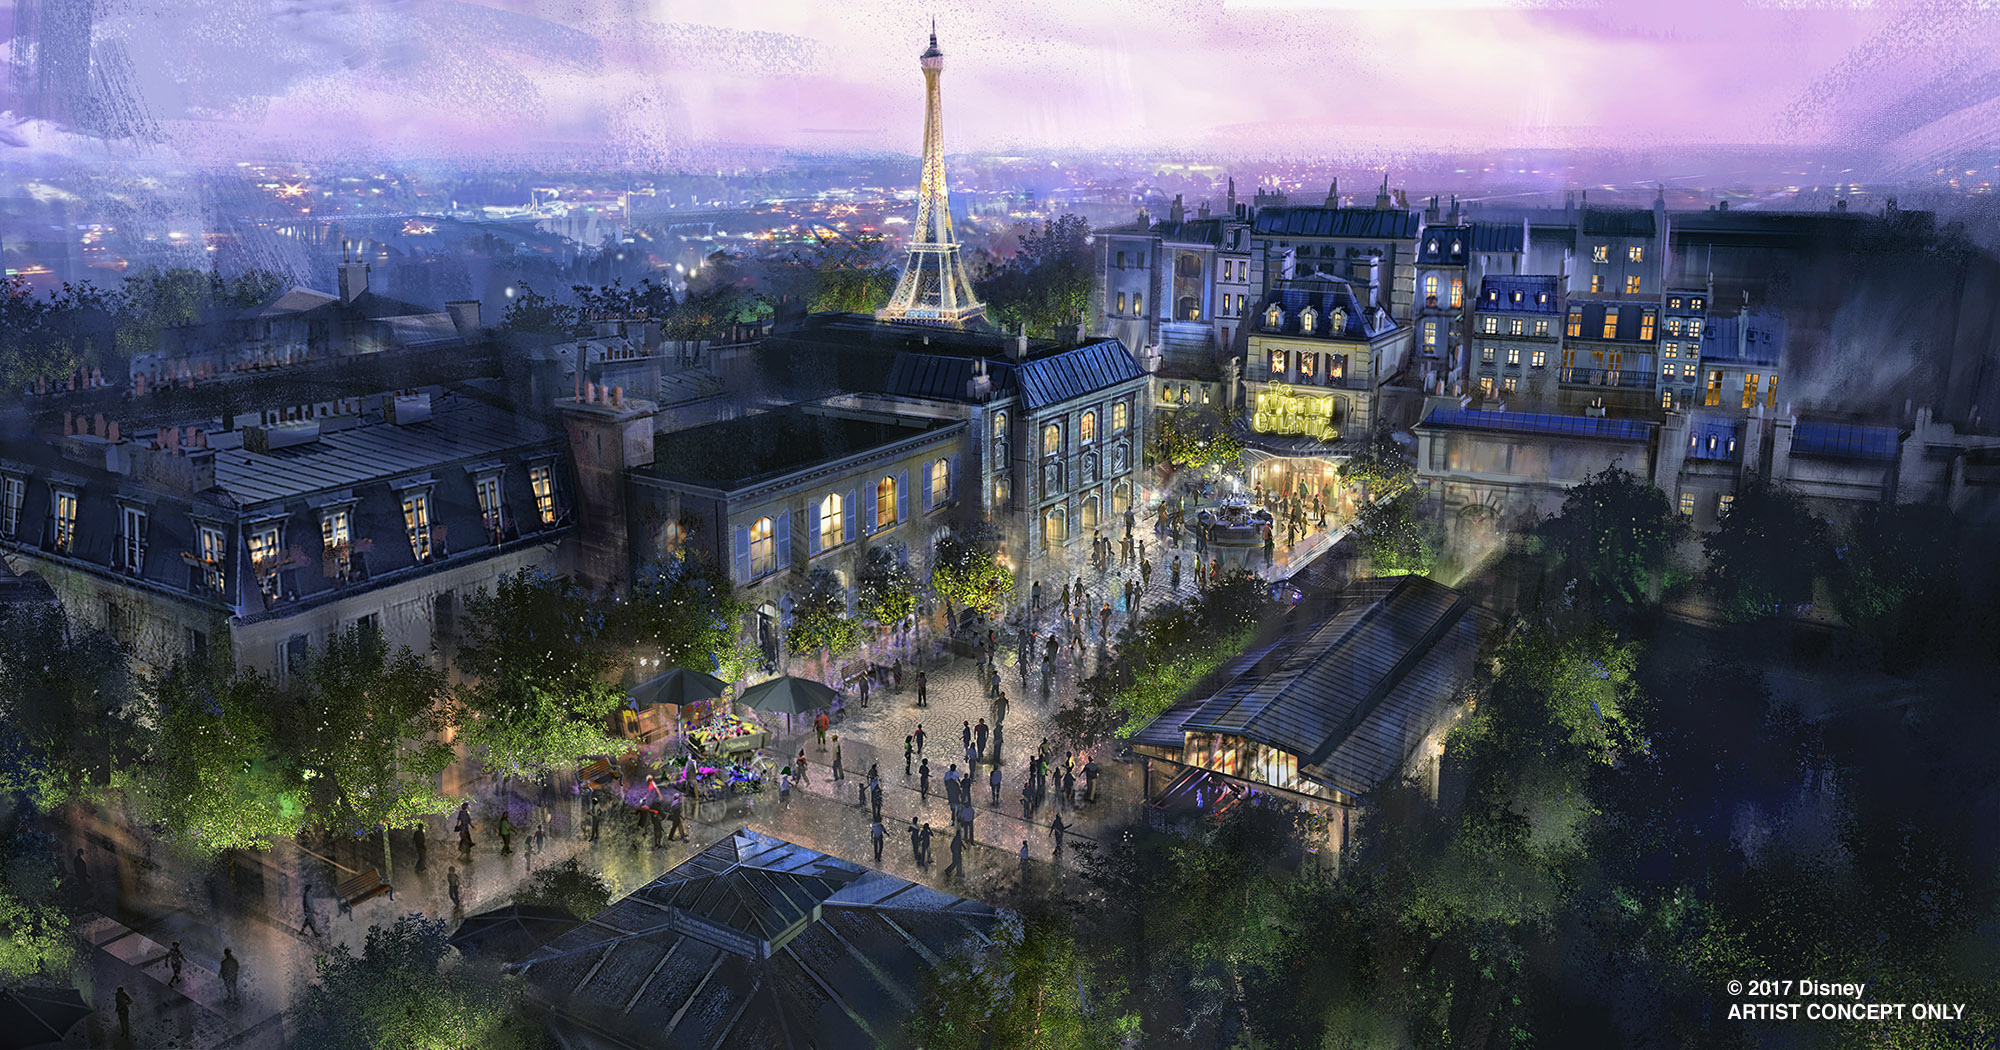 Looking ahead to the 50th Anniversary of Walt Disney World Resort, Walt Disney Parks & Resorts Chairman Bob Chapek announced exciting plans across Epcot to realize the original vision of the park while making it more timeless and relevant than ever before. Patterned after the number one family attraction at Disneyland Paris, Ratatouille will be added in an all-new space in the France pavilion in World Showcase at Epcot.